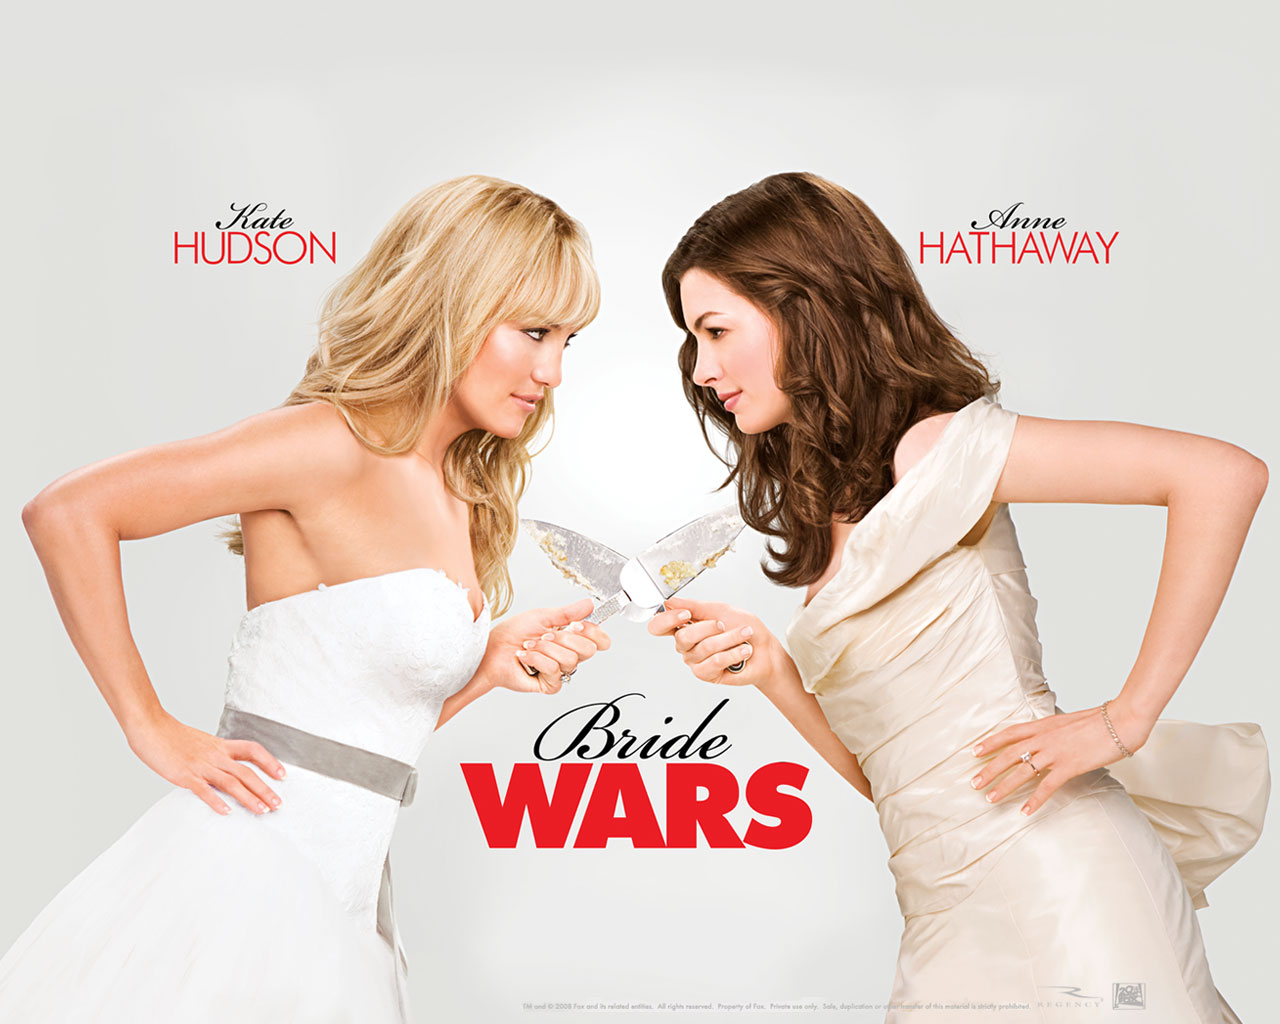 Bride Wars 644.74 Kb